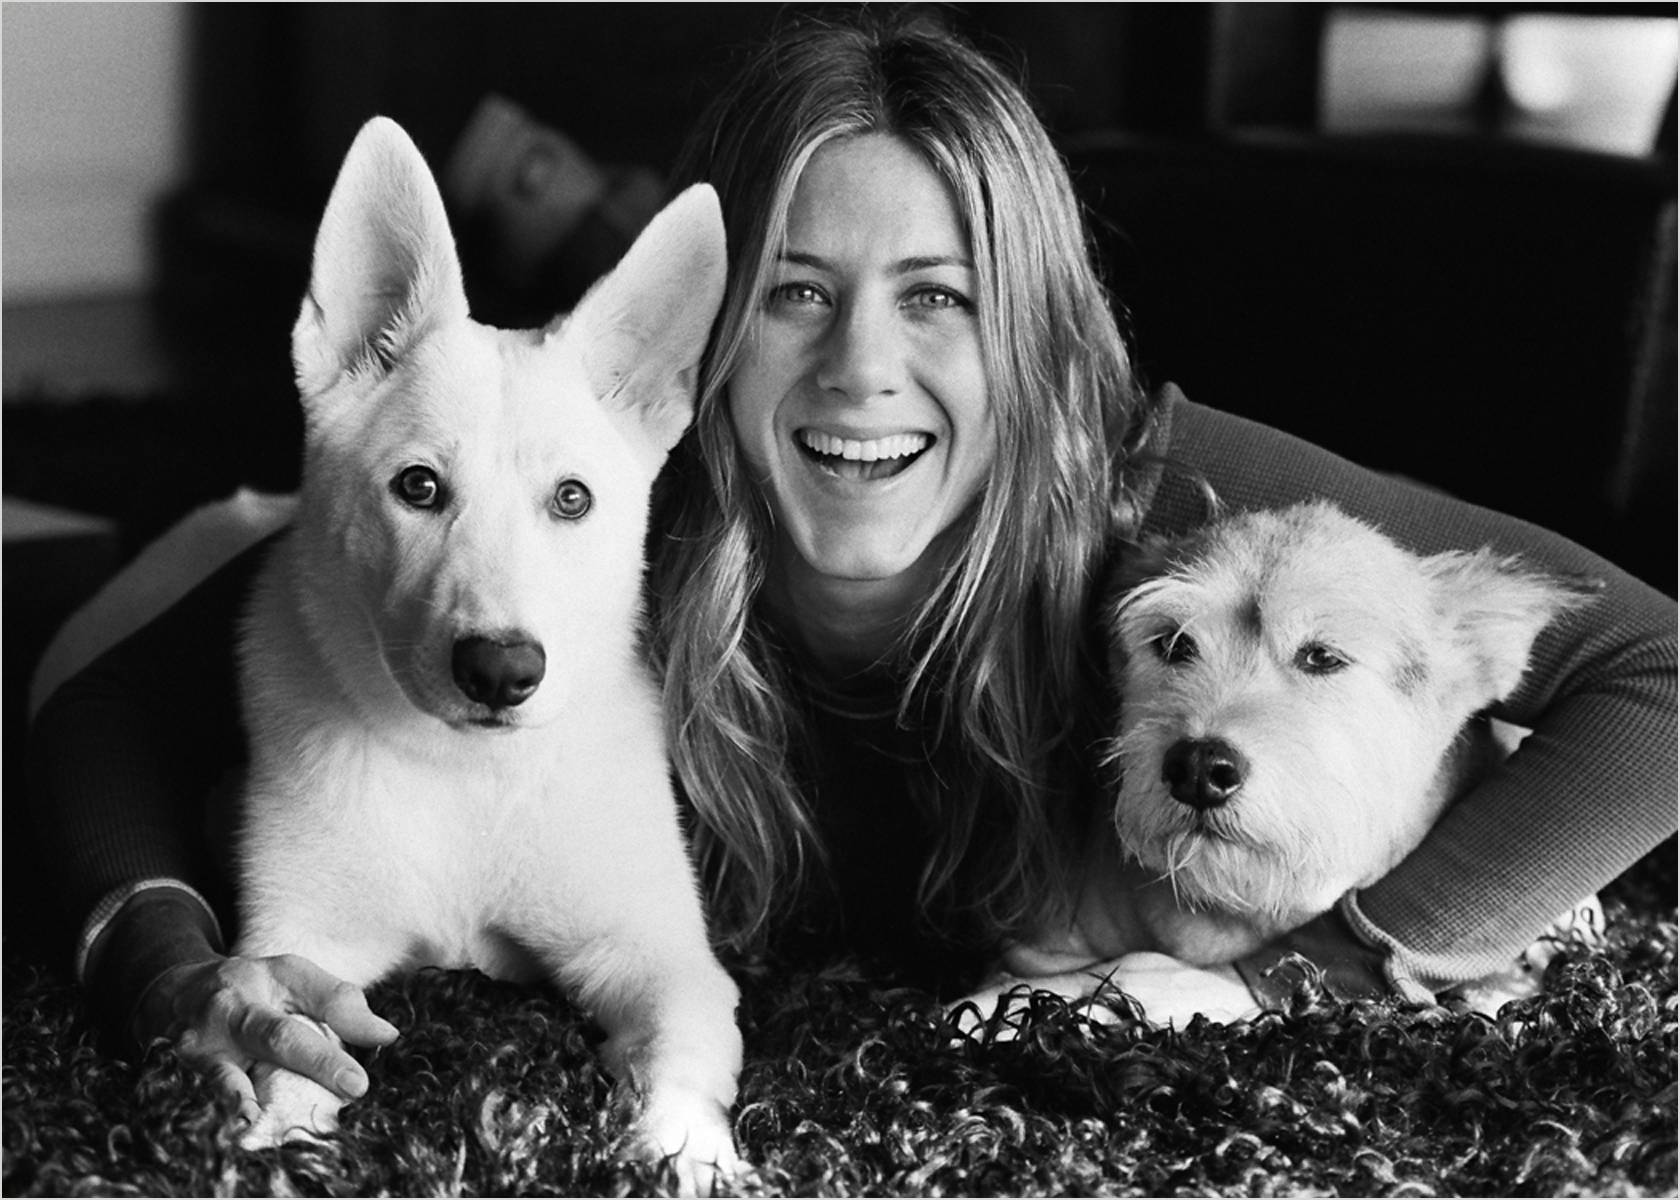 3_1jen_and_dogs.jpg